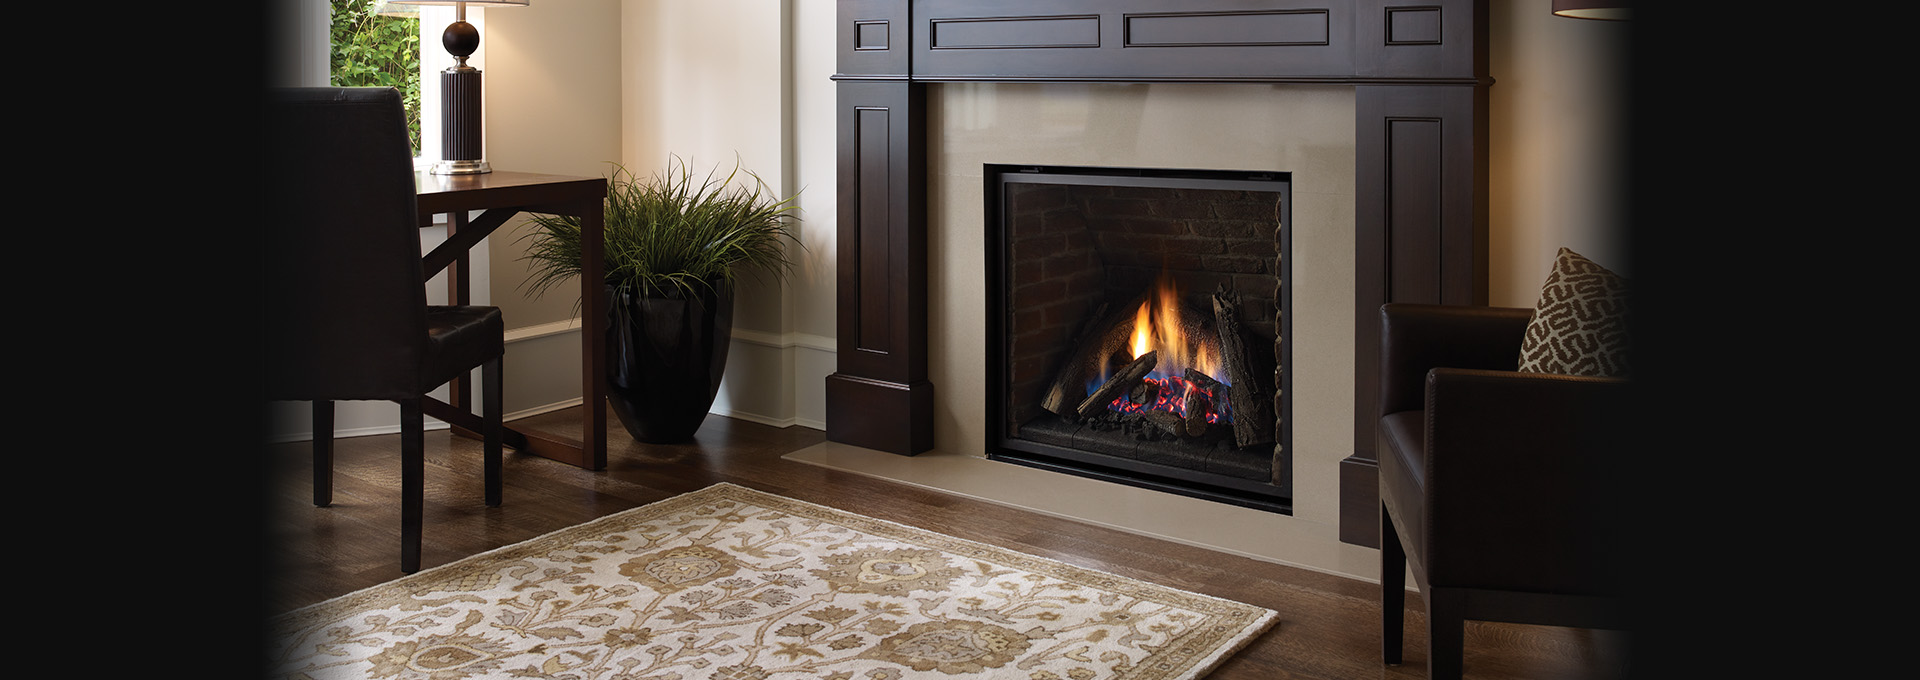 Running Gas Line To Fireplace Fireplaces Hearths Revere Gas Propane Service Appliances